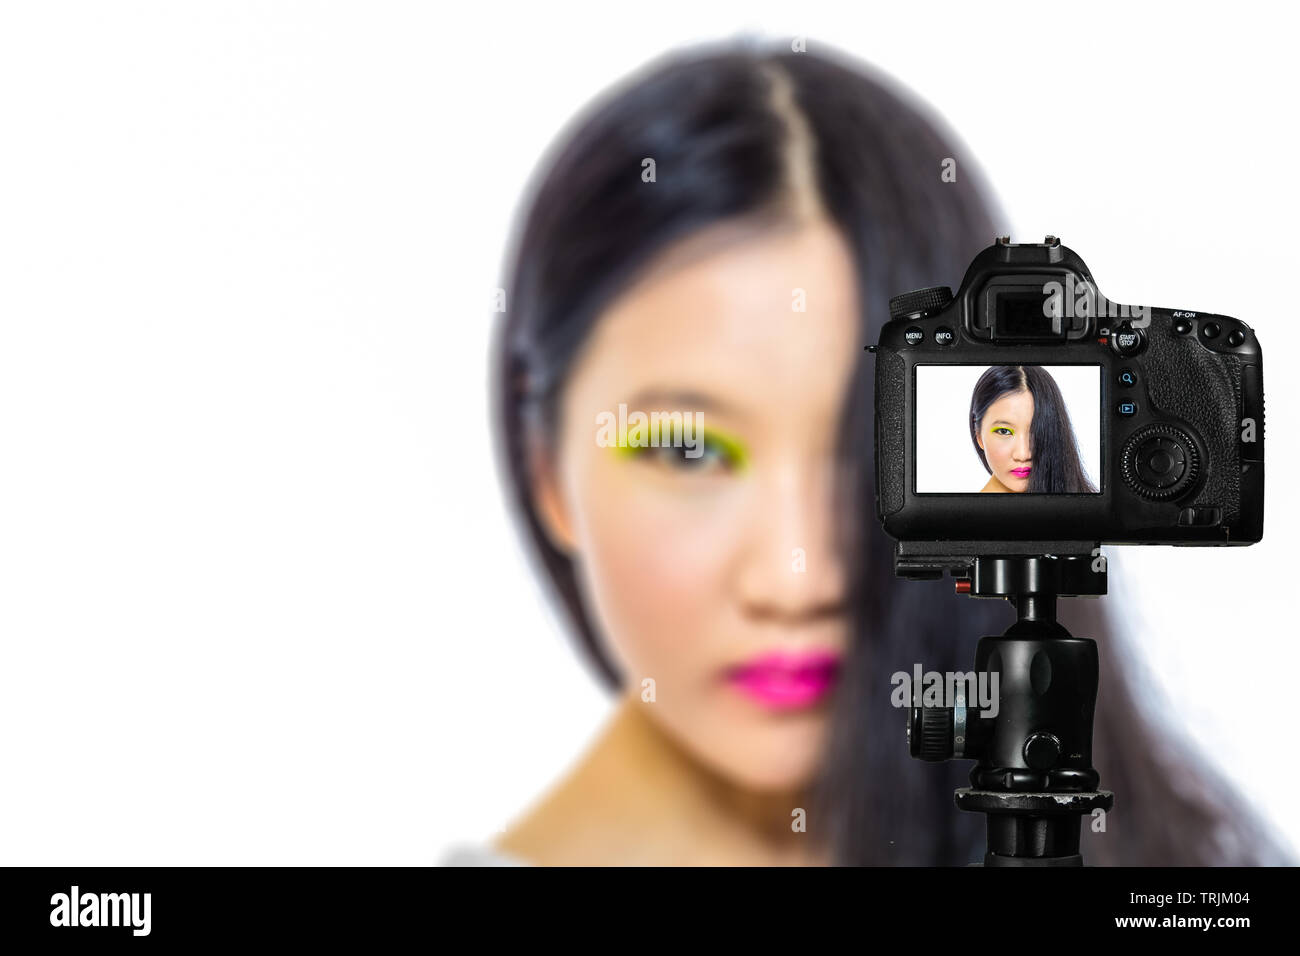 Focus on live view on camera on tripod, teenage girl  makeup beauty shoot image on back screen with blurred scene in background. Teenage vlogger lives - Stock Image